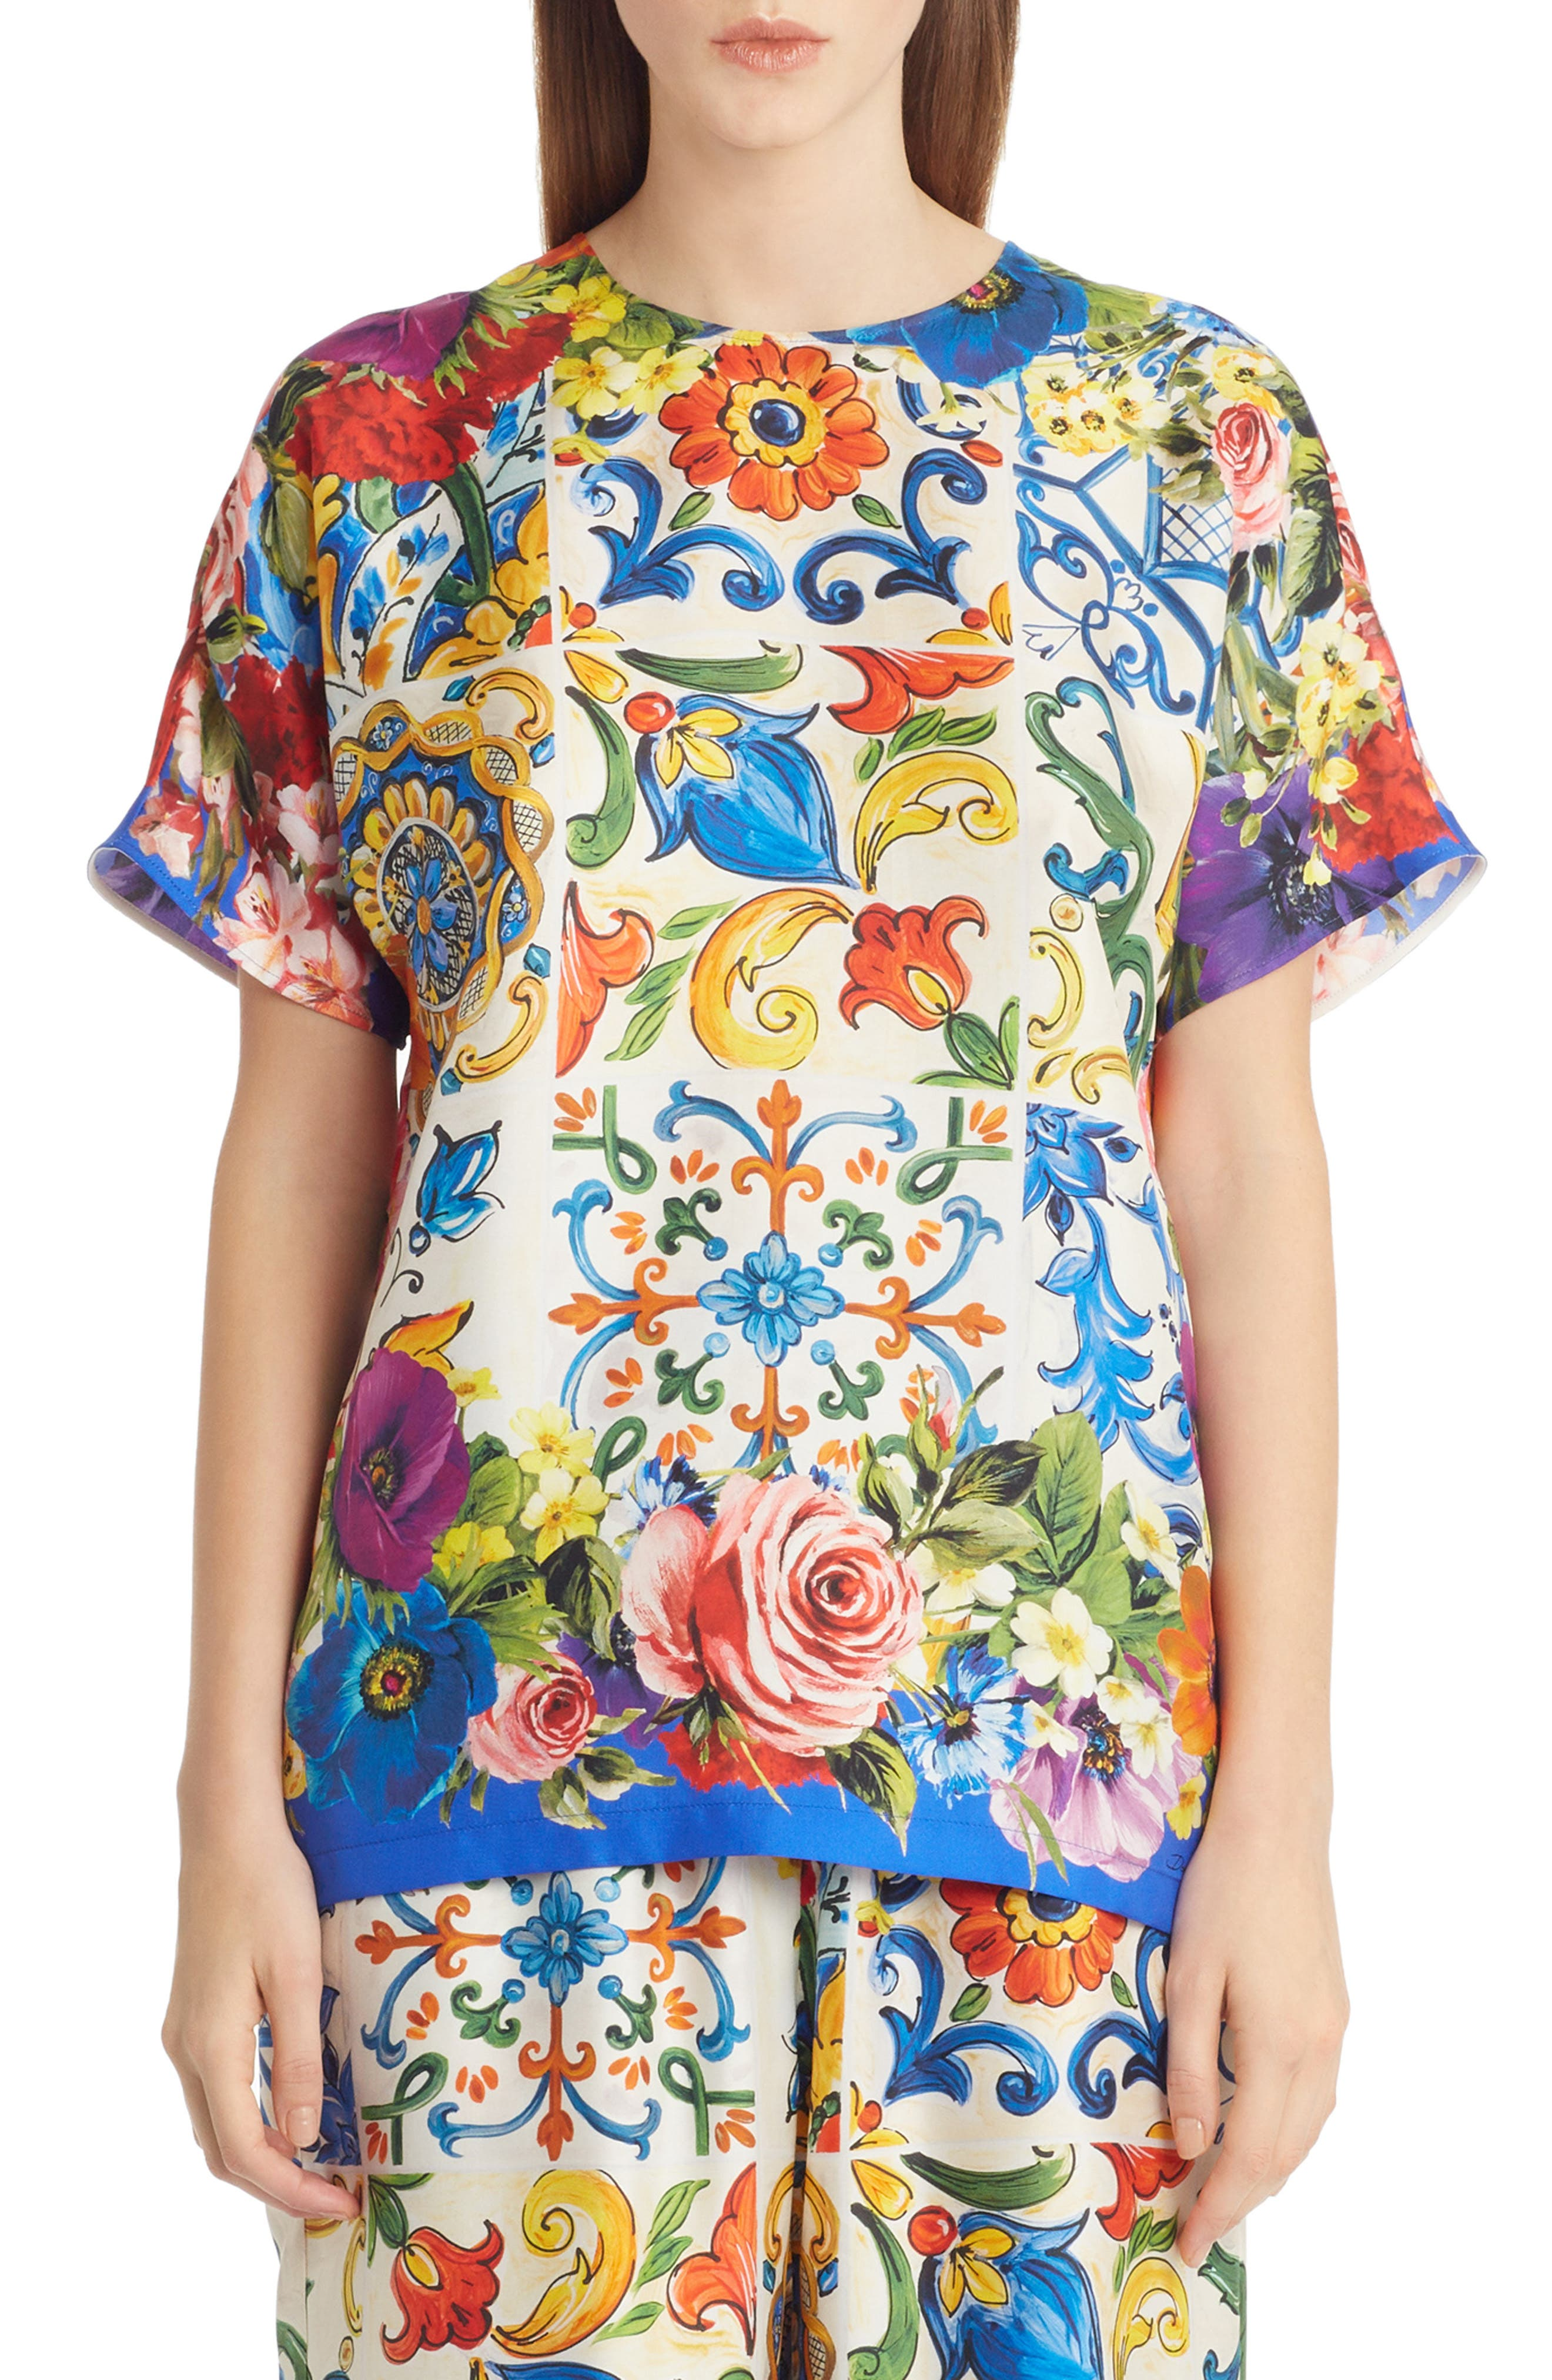 Dolce&Gabbana Tile Print Silk Top